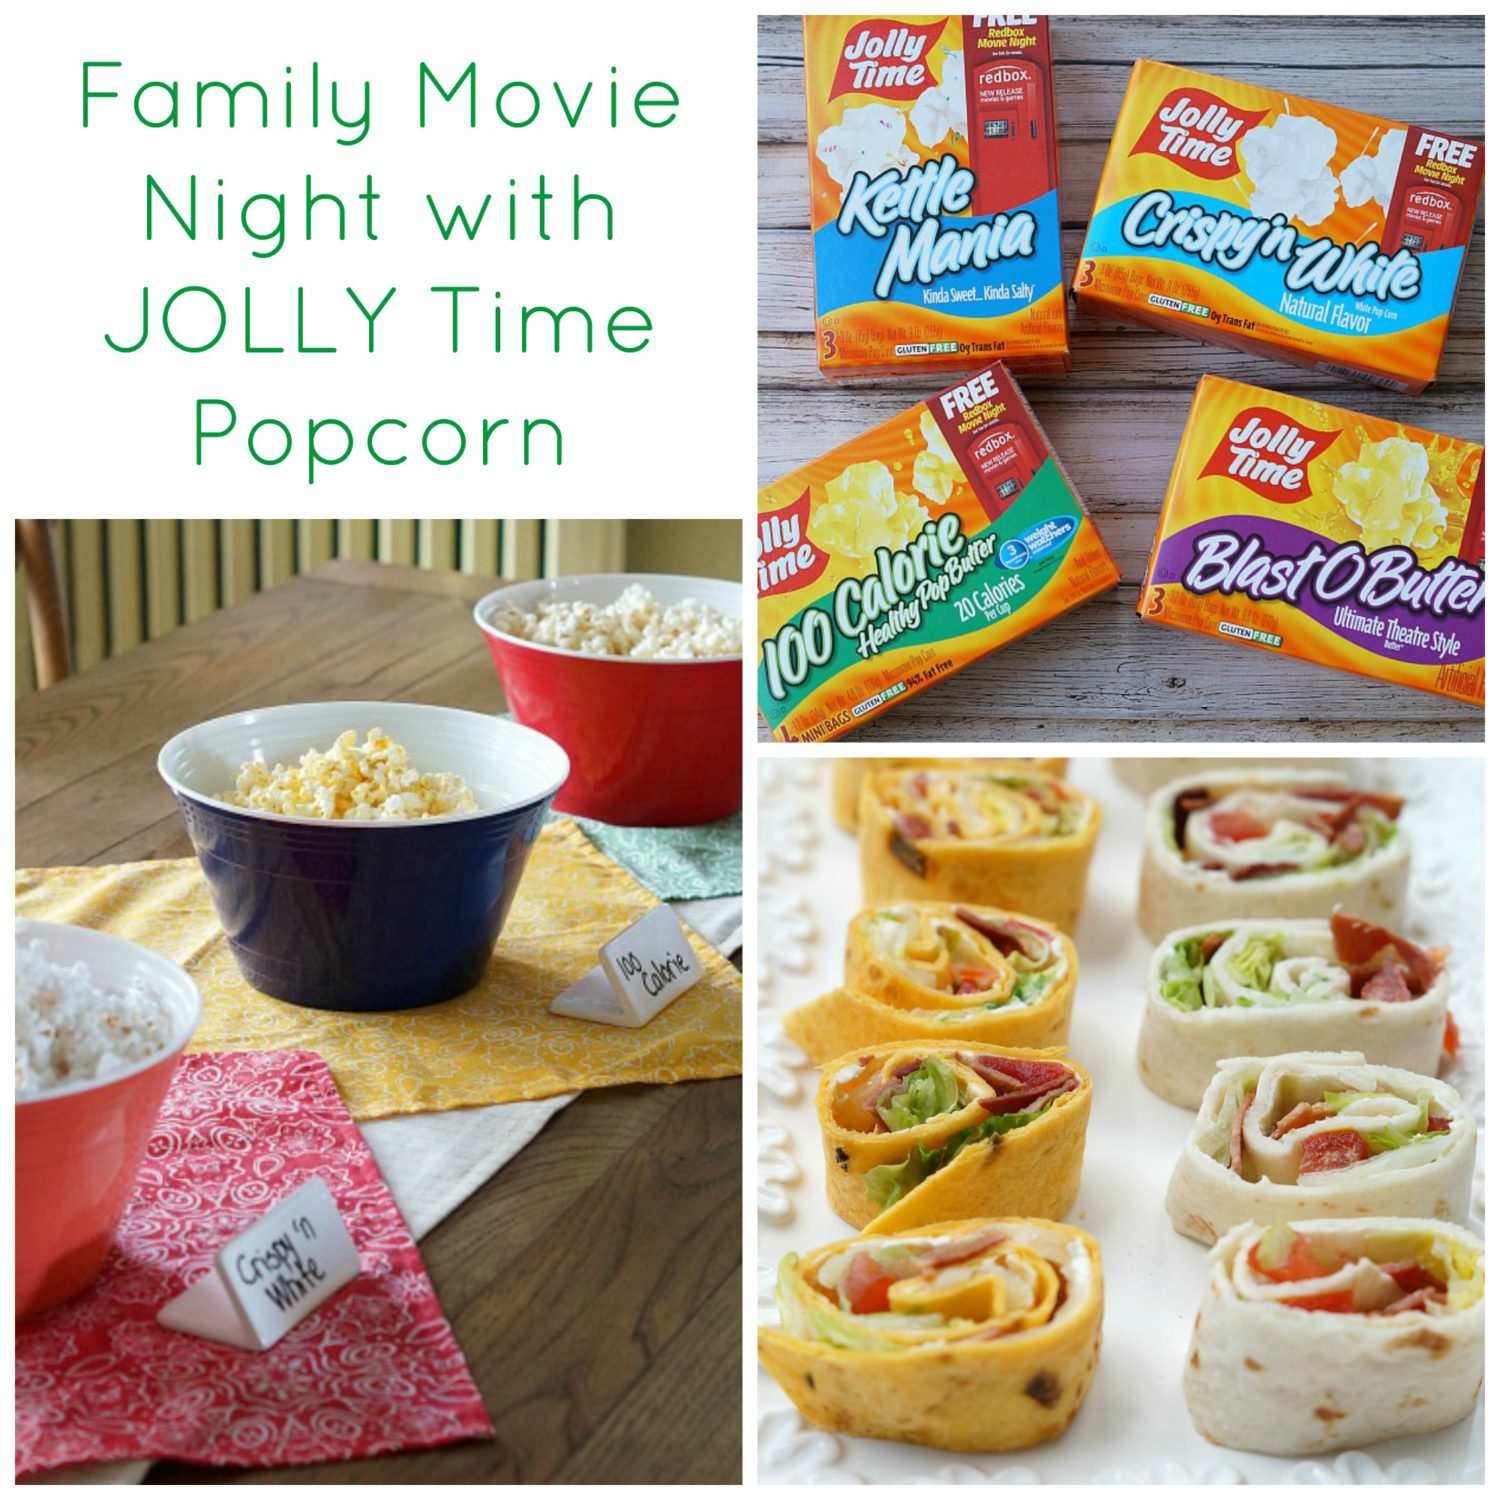 Family Movie Night with JOLLY Time Popcorn